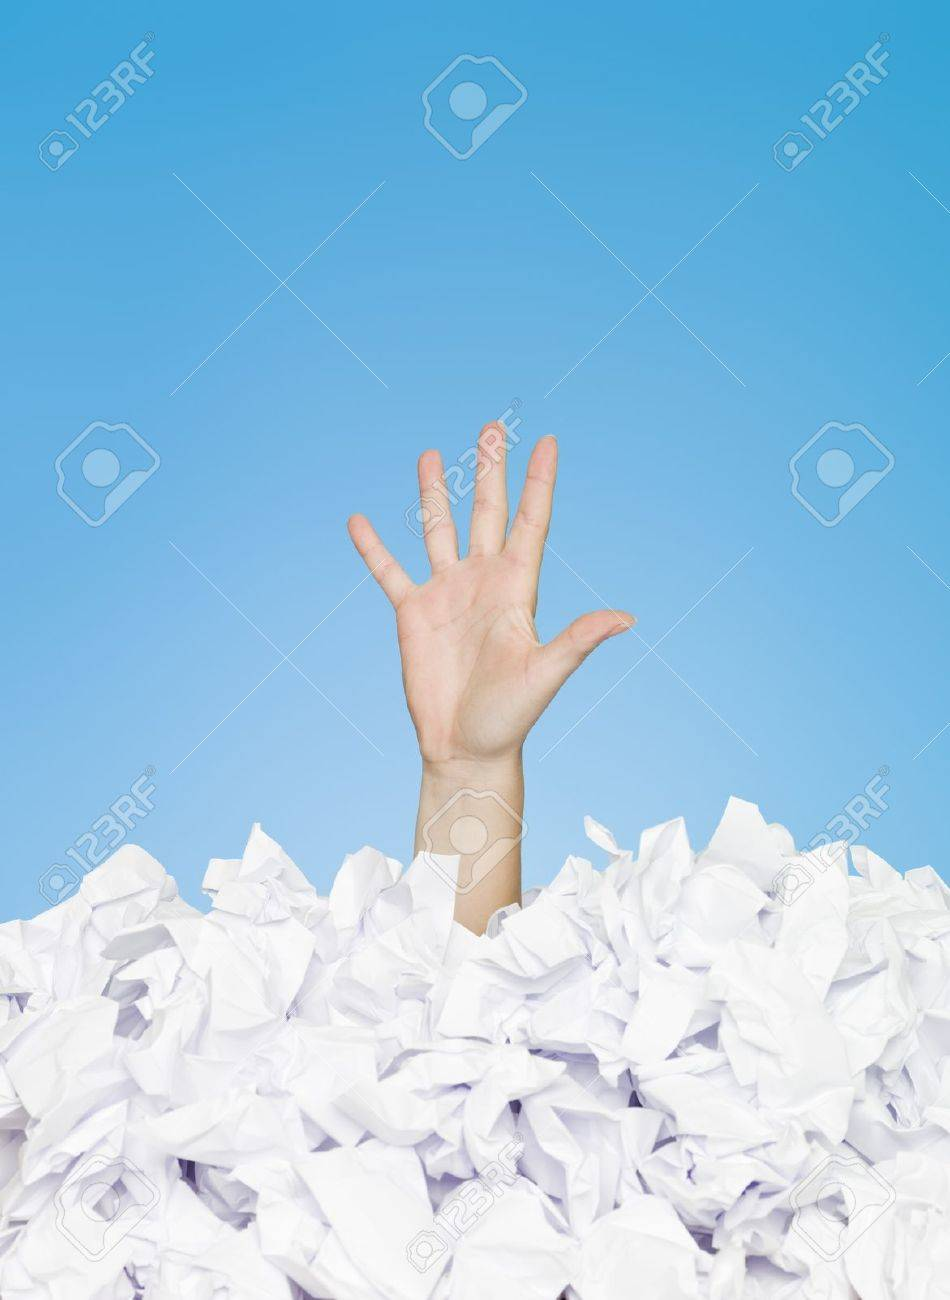 Human hand buried in white paper Stock Photo - 7155276